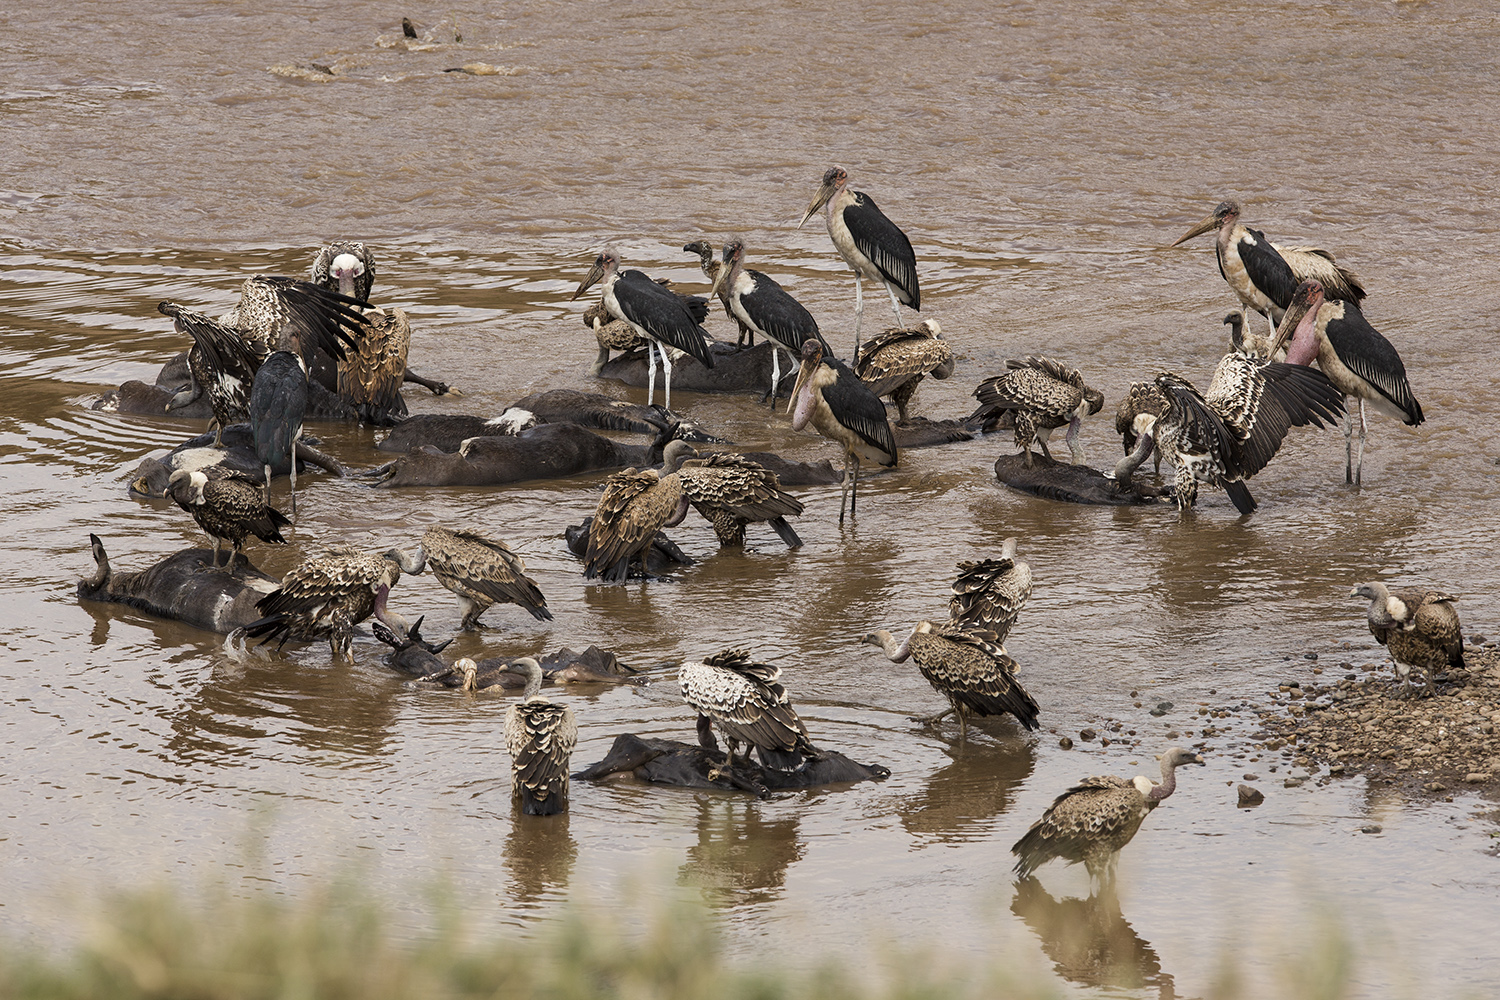 Vulture frenzy on the maasai mara migration river crossing